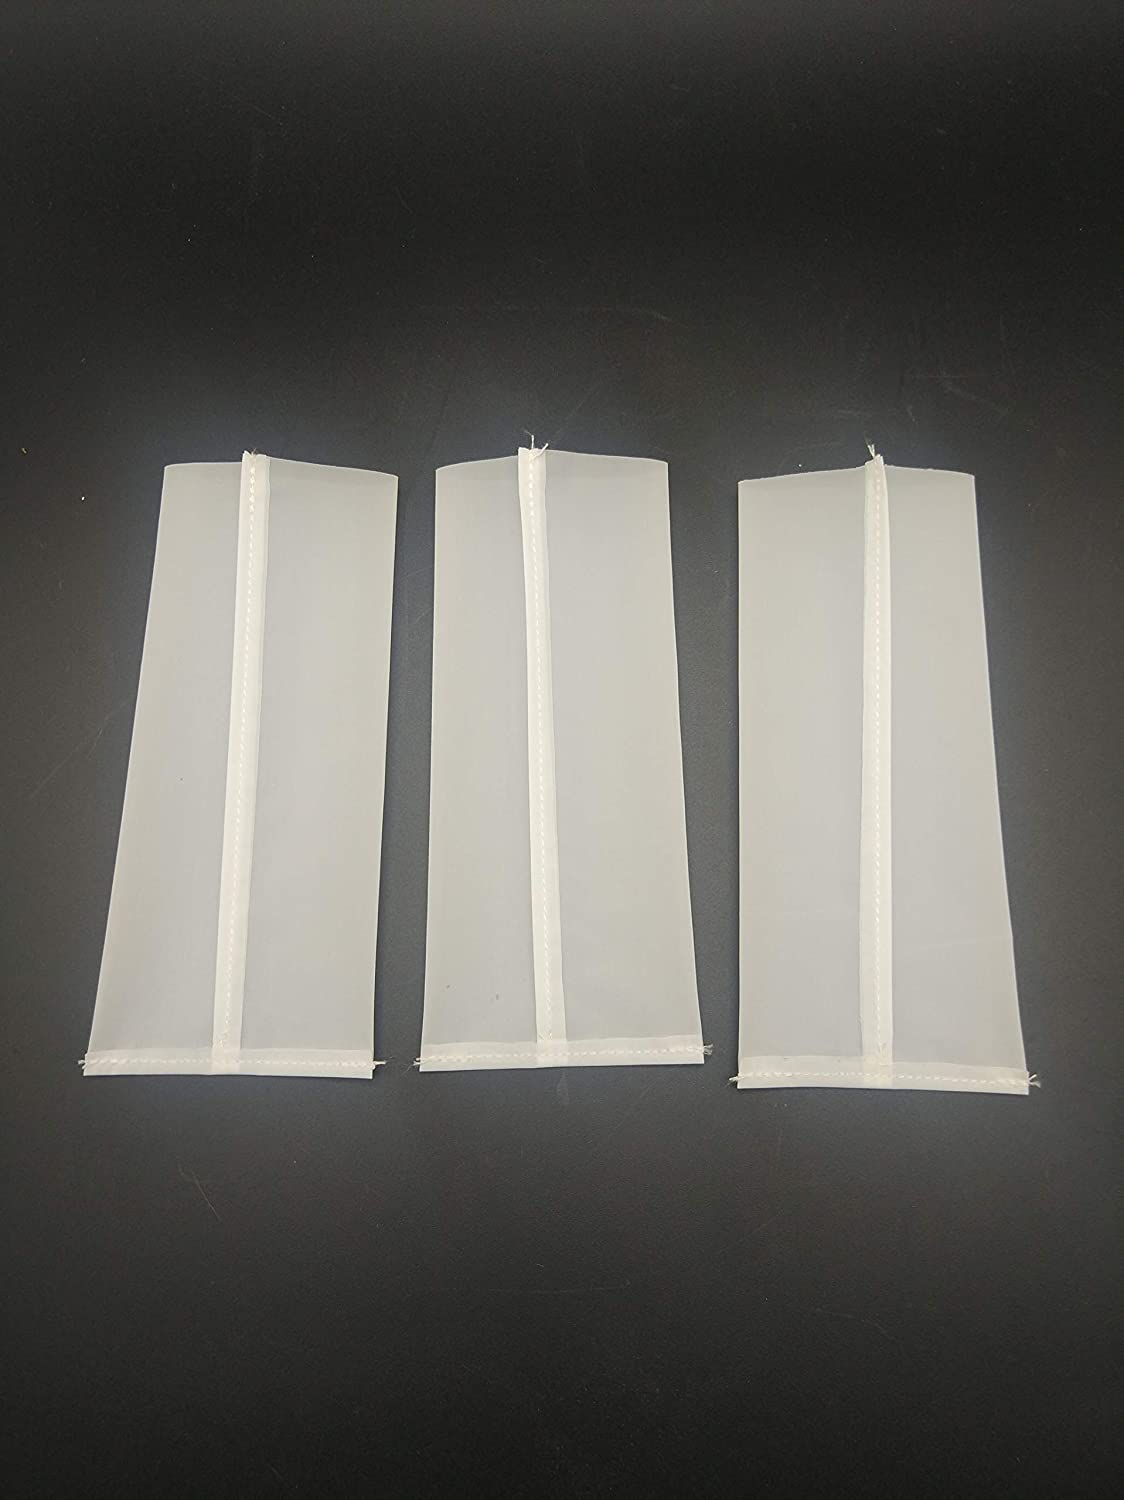 2018 New Arrival top Seam Rosin Press Bags 2 Plus 4.5inch top Sewing Style filter bags 25micron Extraction Bags Tea Bags in Stocks- 100pack 2x4.5inch-25u Micron